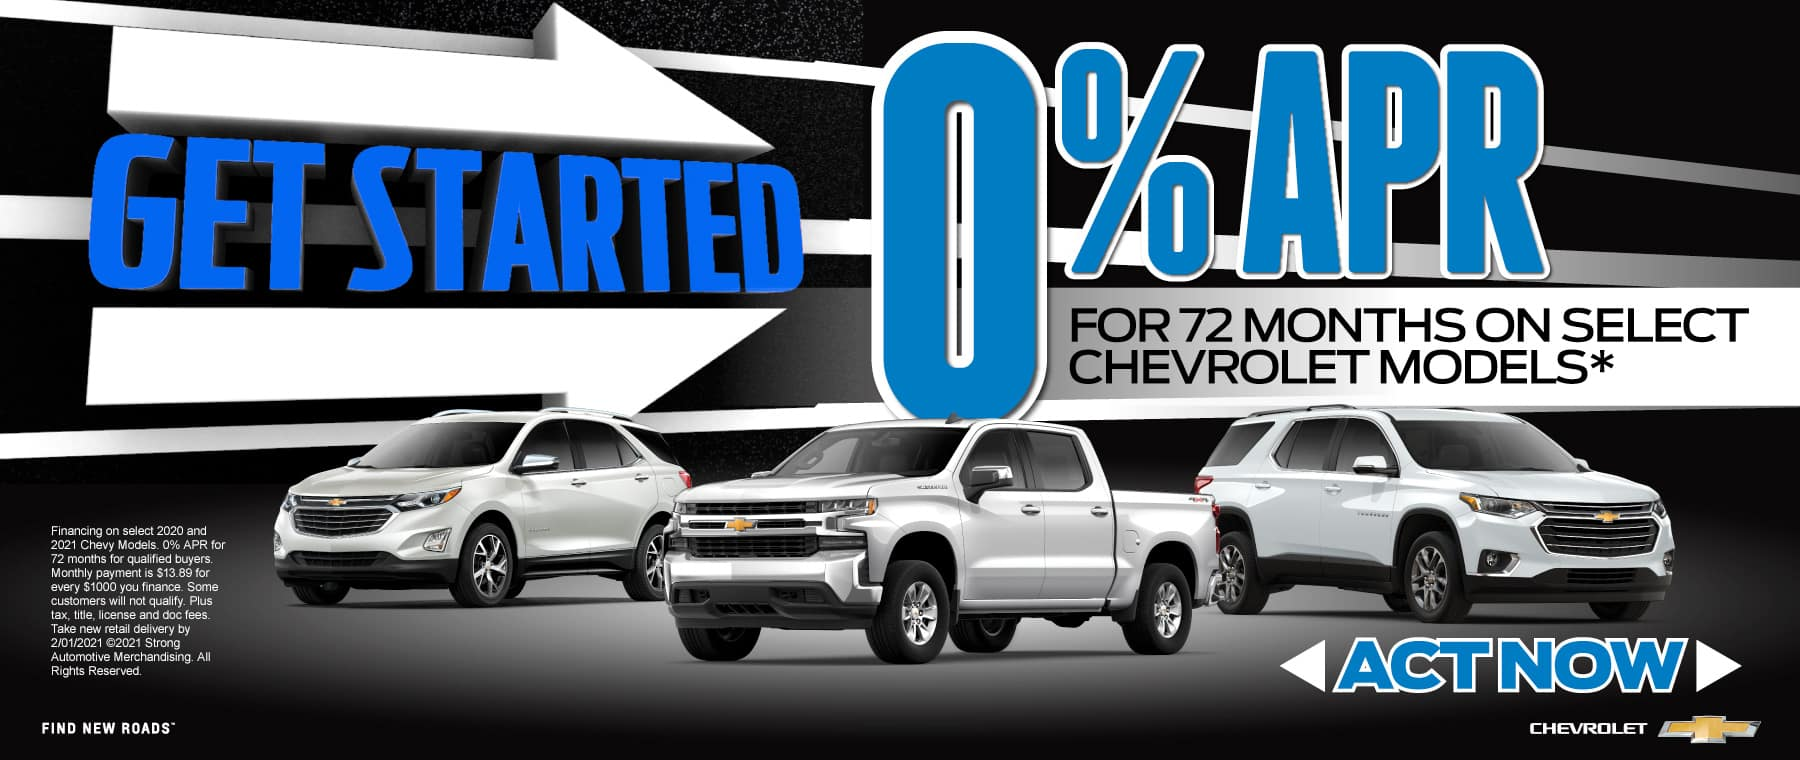 0% APR on Select Chevy models - Act Now